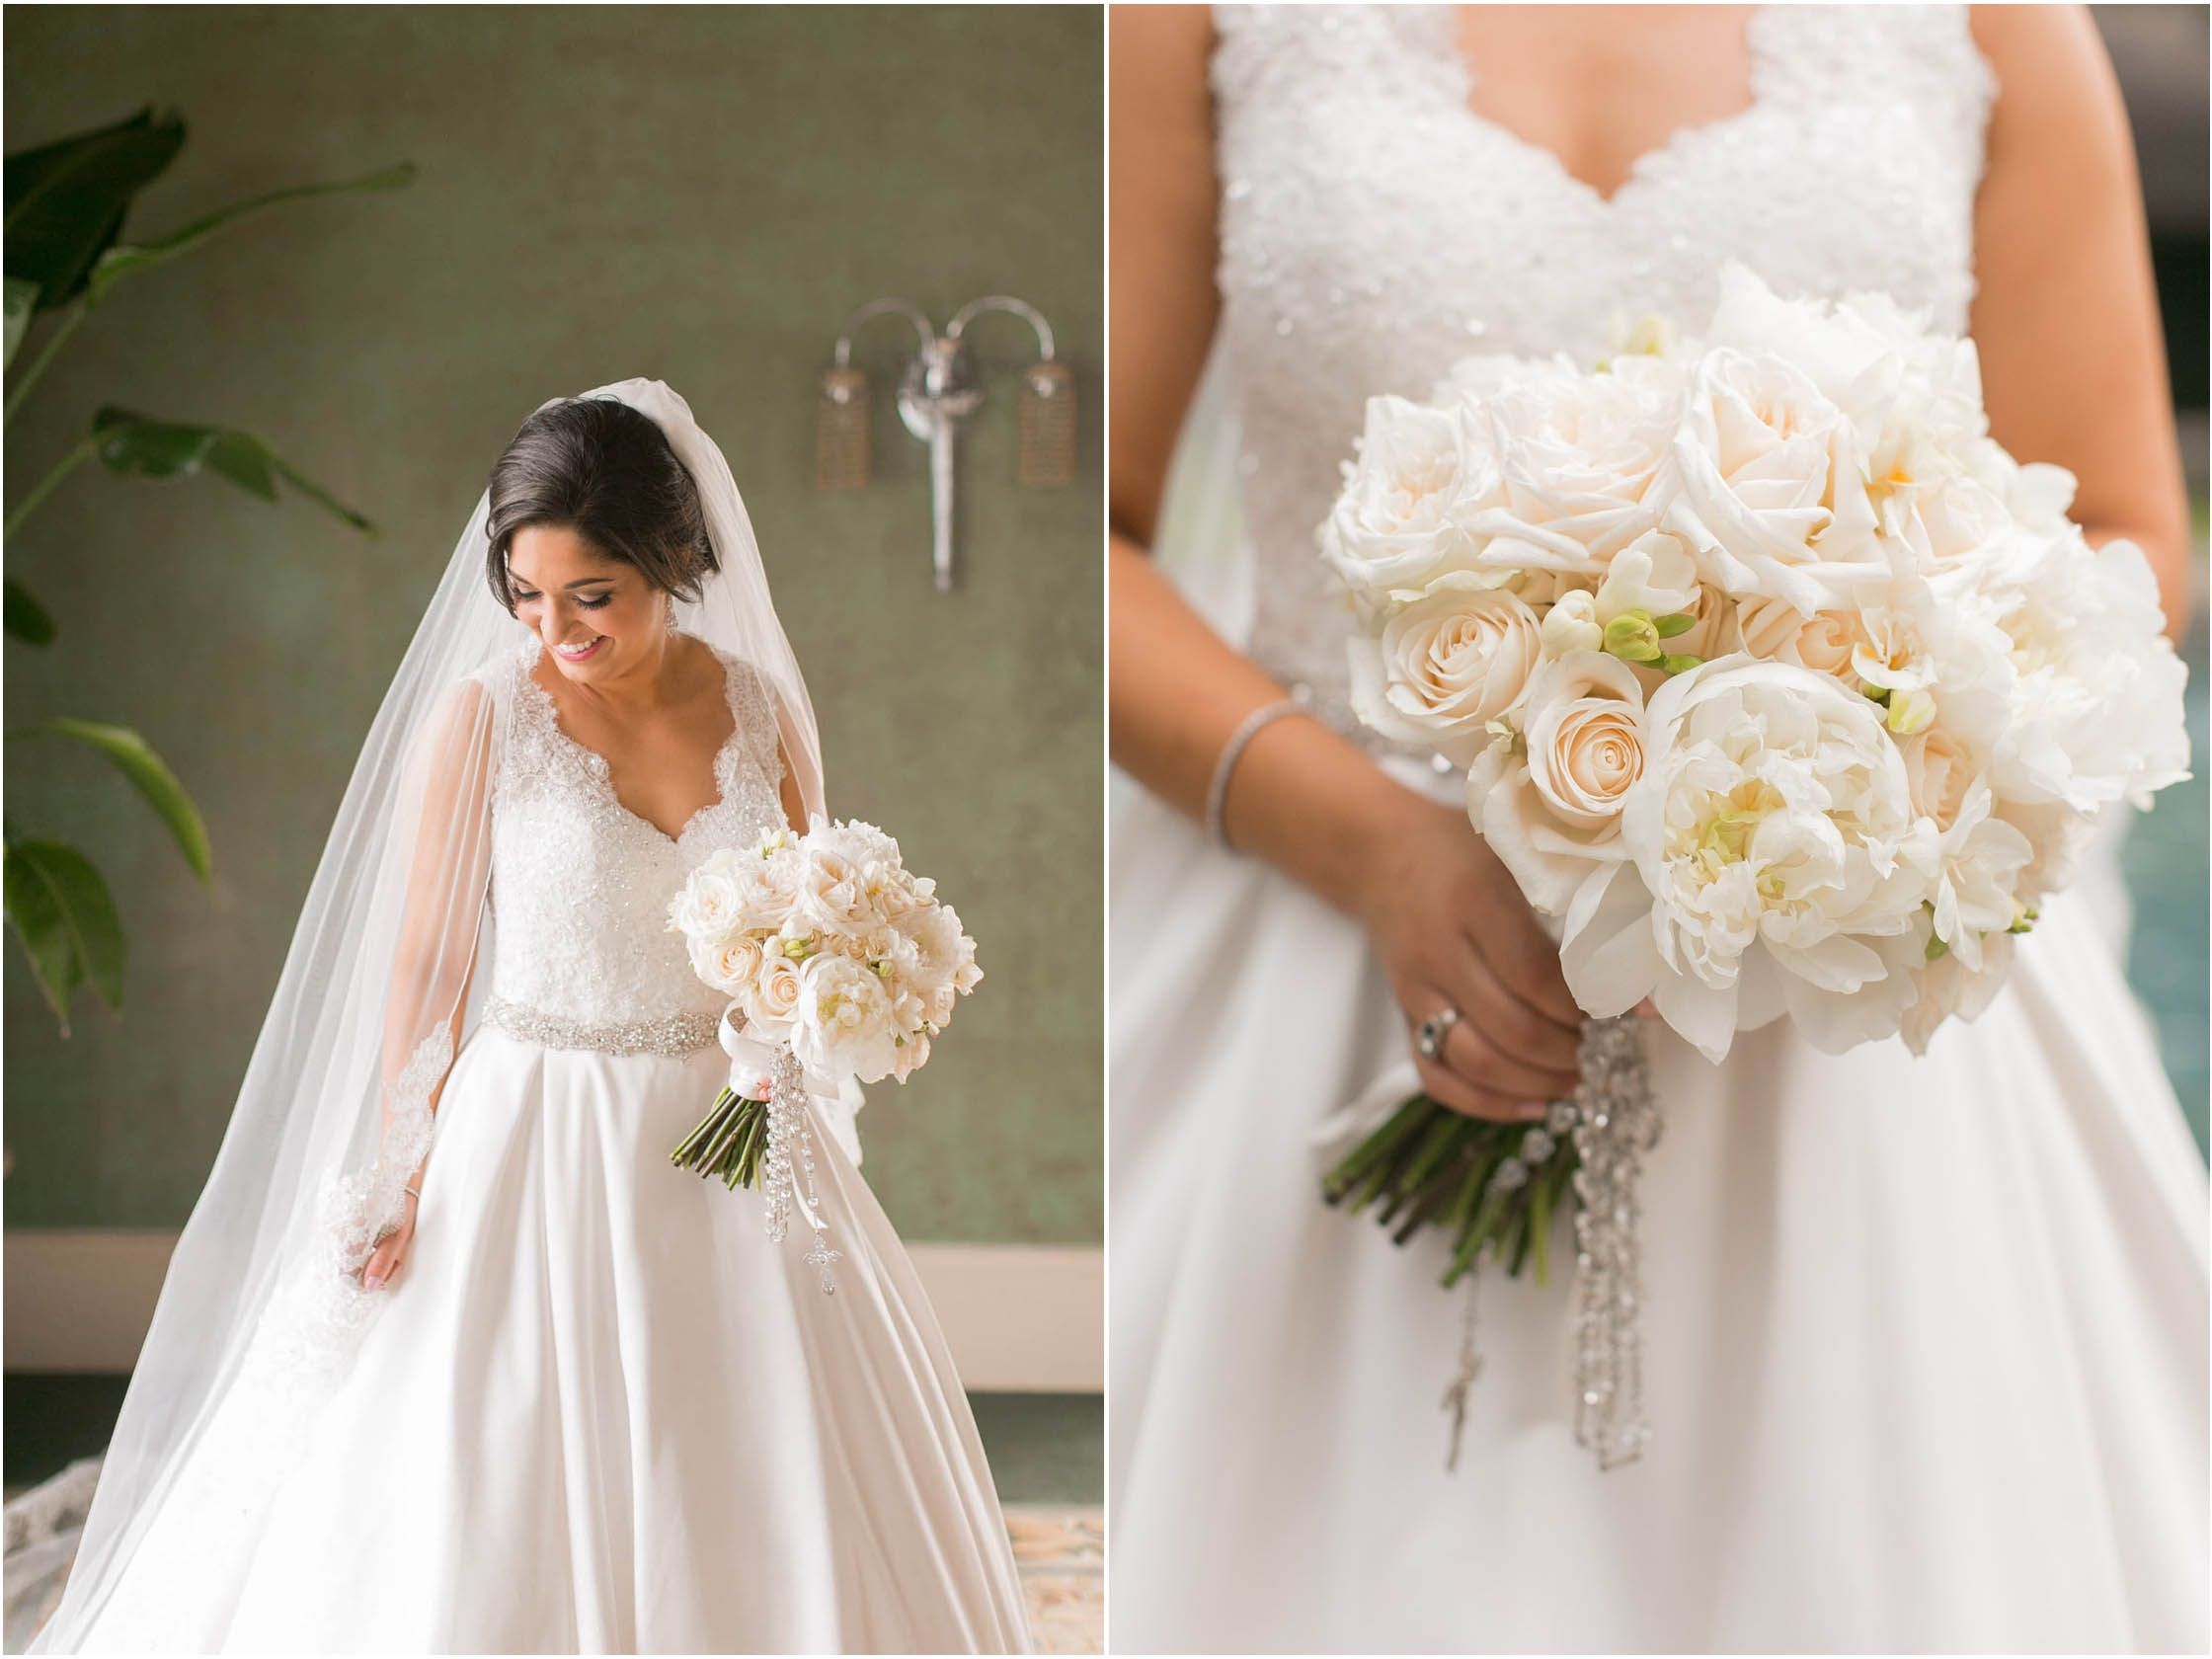 Elite wedding dresses  New Orleans and Paris wedding photographers  Elite husband and wife